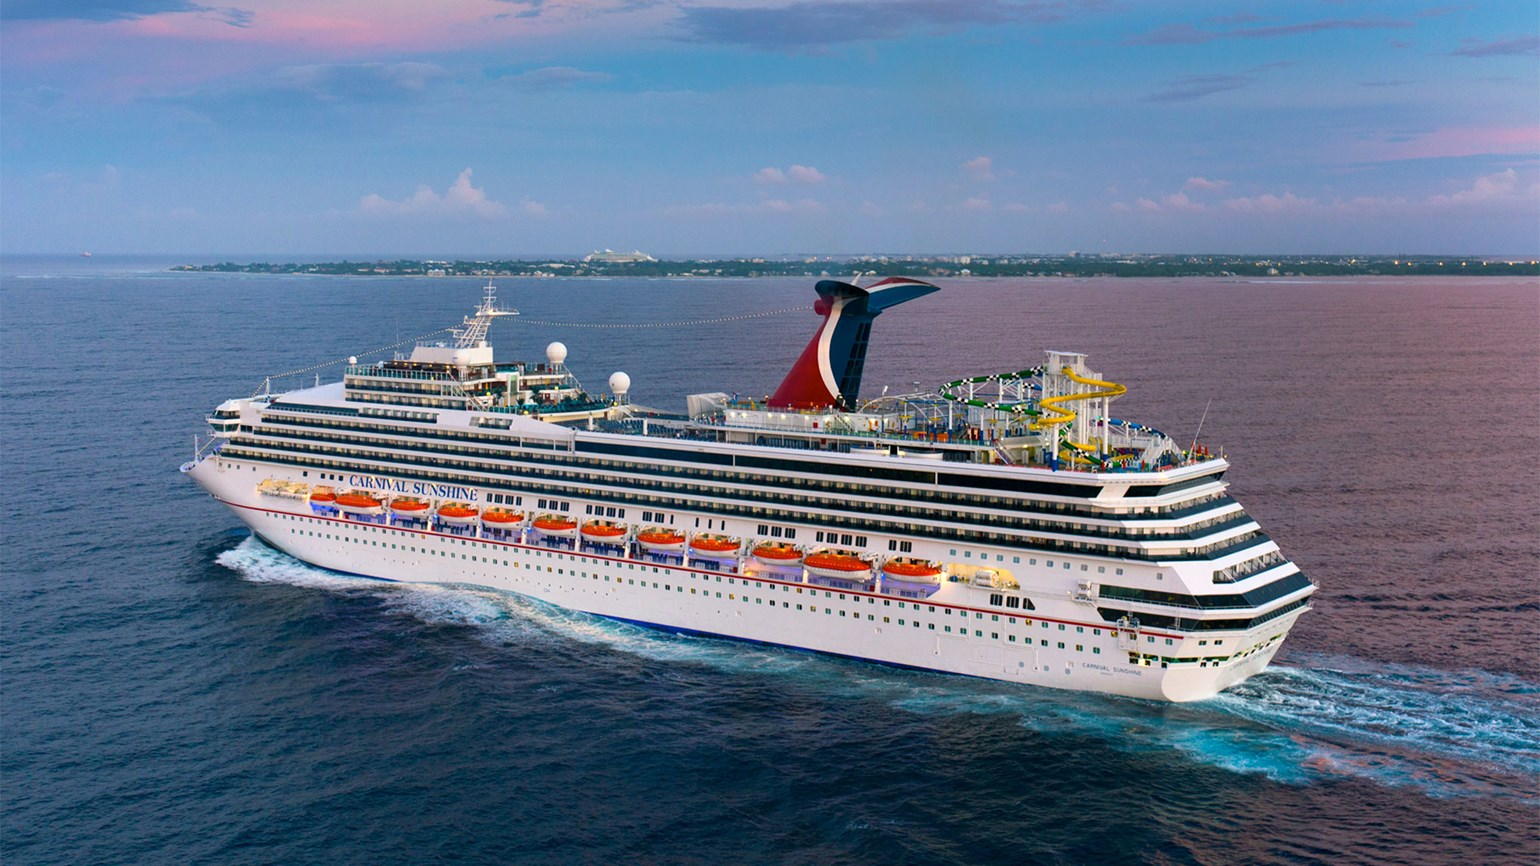 Carnival Sunshine at sea aerial